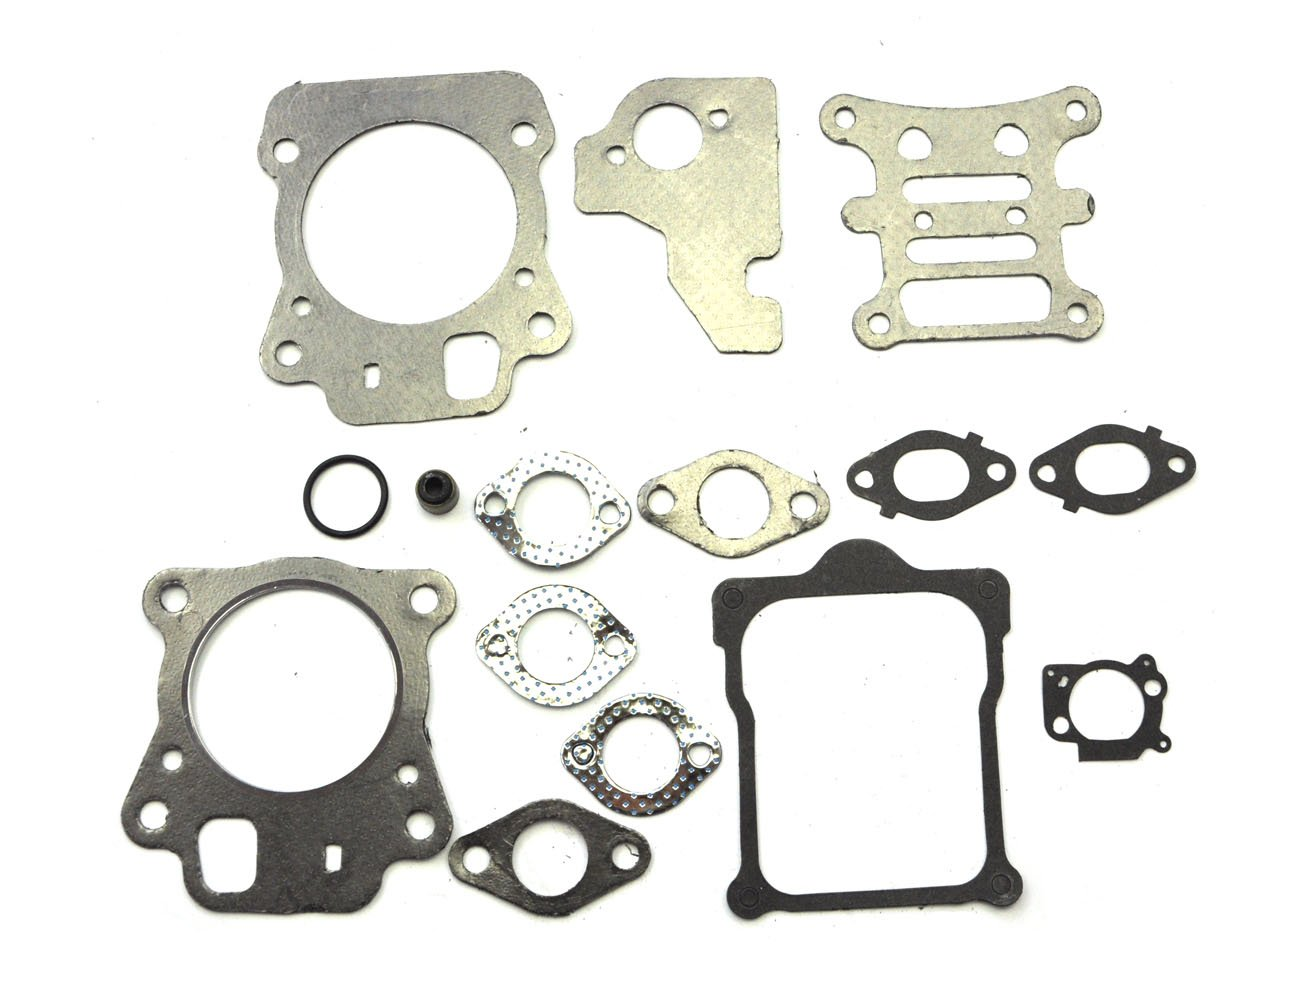 NEW 592174 Valve Gasket Set Replaces Briggs & Stratton # 799496, 796662 by Karbay